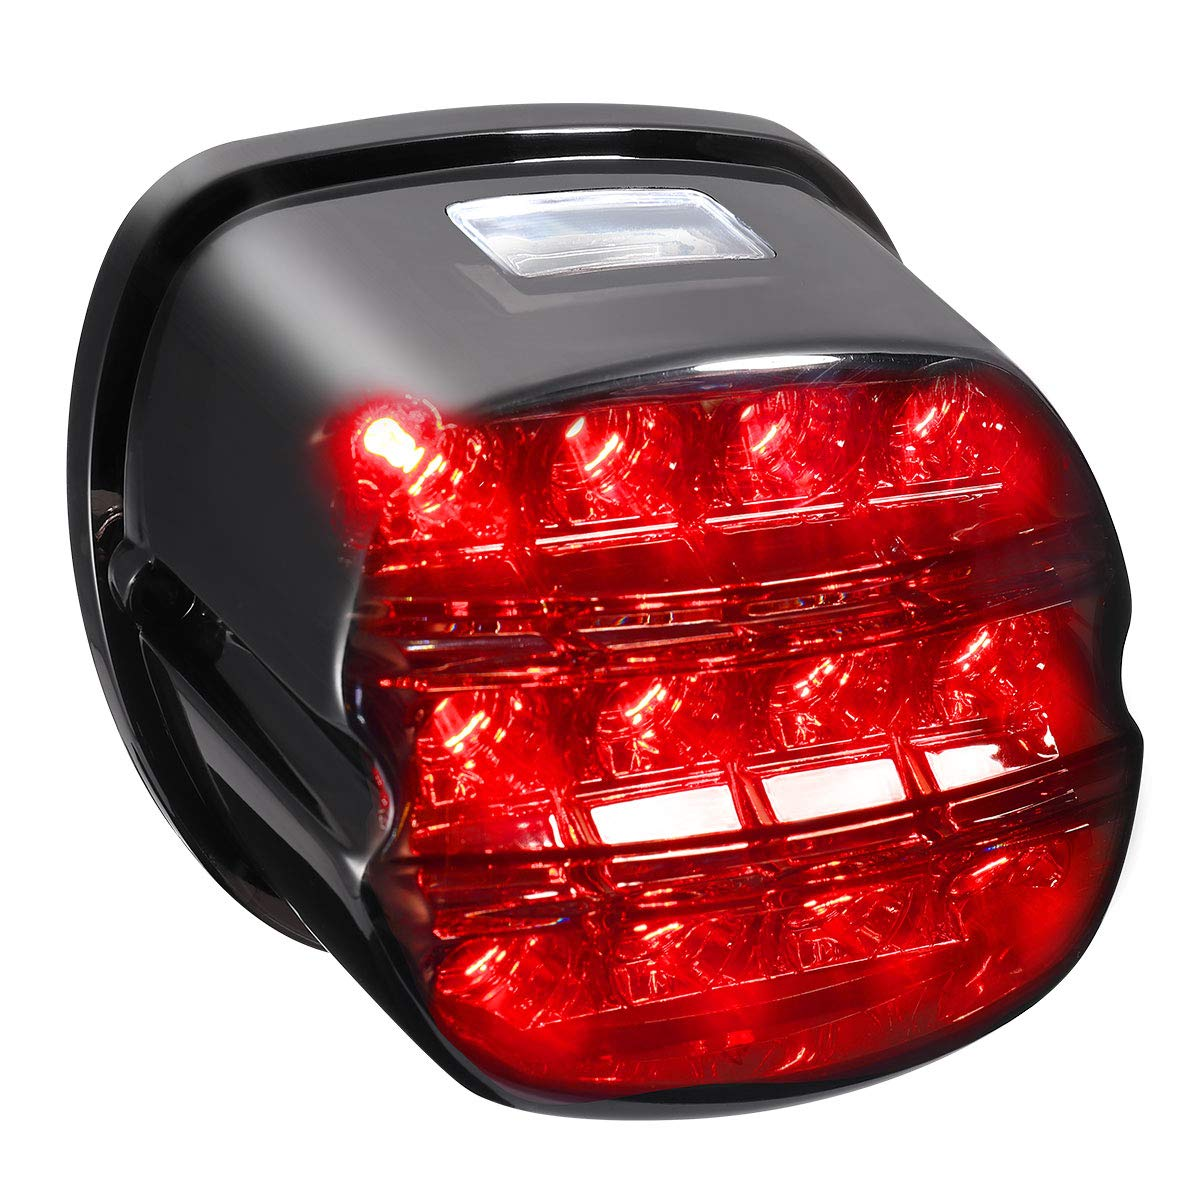 Smoked LED Rear Tail Light Taillight Braking Lamp for Electra Street Glide Tri Glide Road King Dyna Softail Fat Boy Sportster Aftermarket Harley Davidson Parts